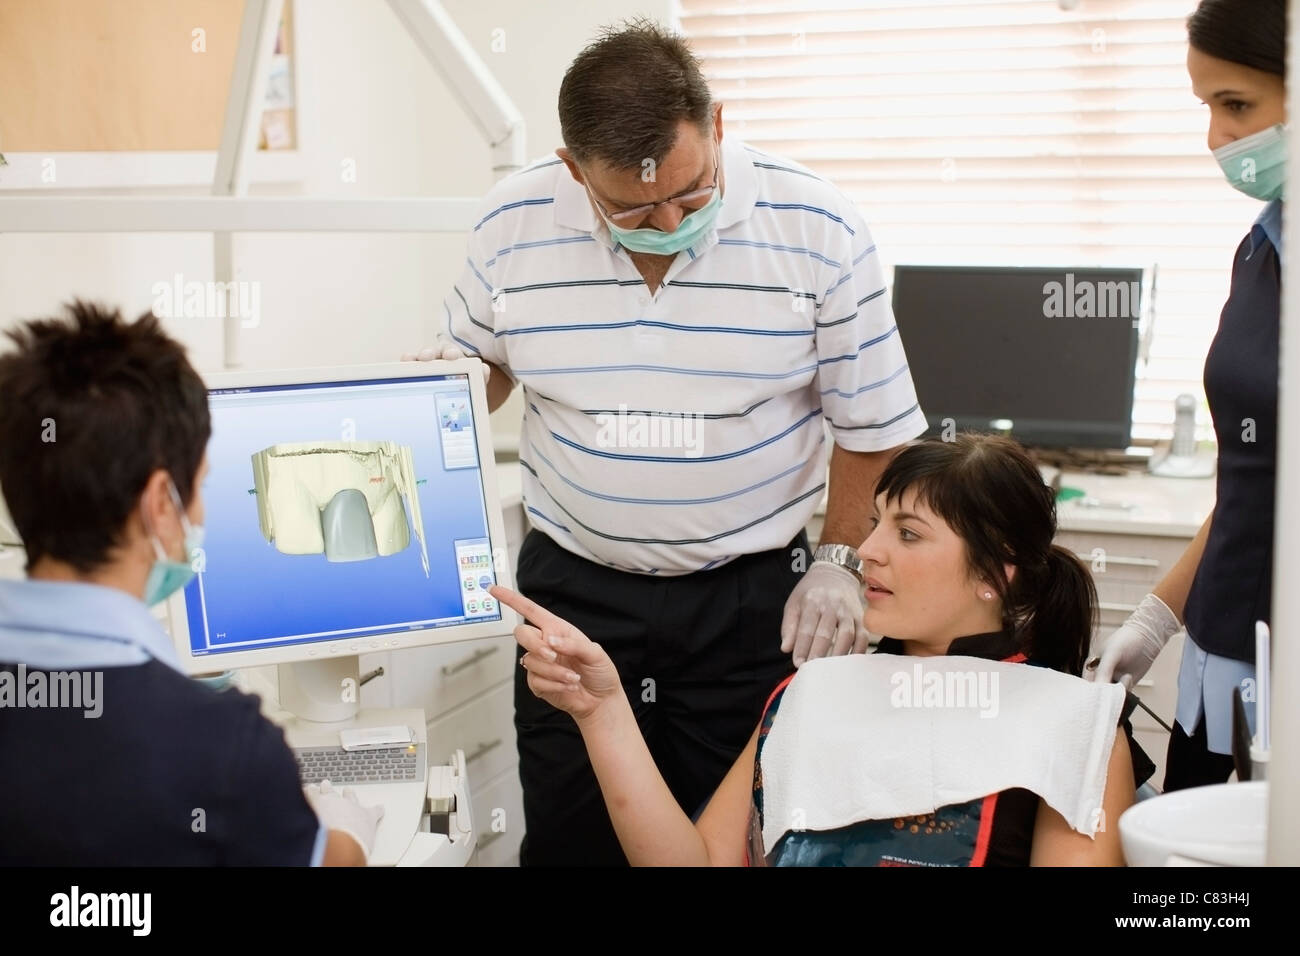 Woman examining model with dentist - Stock Image